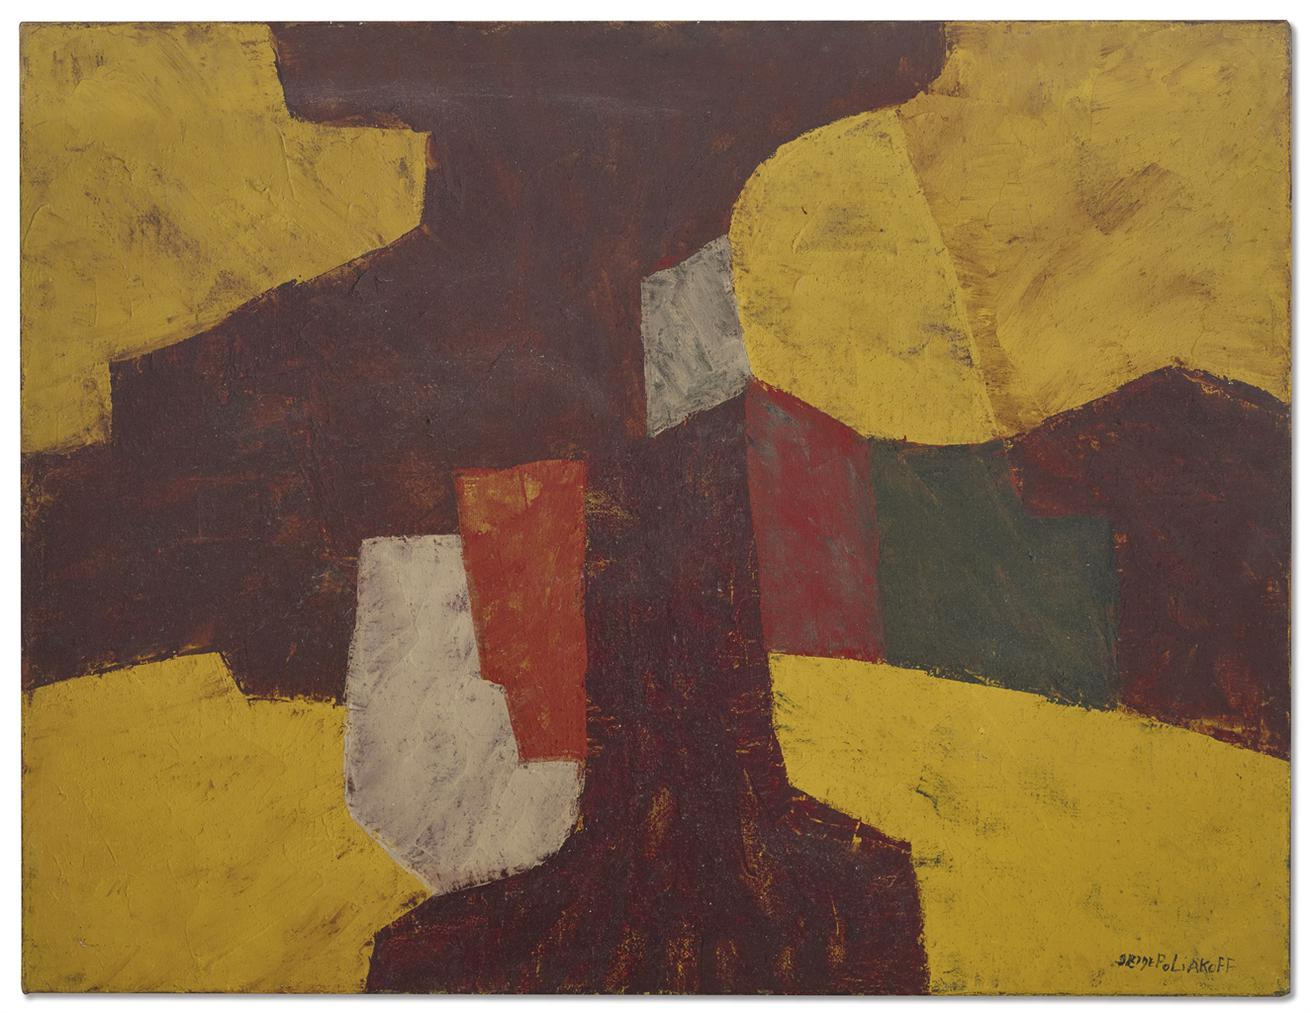 Serge Poliakoff-Composition Abstraite-1957